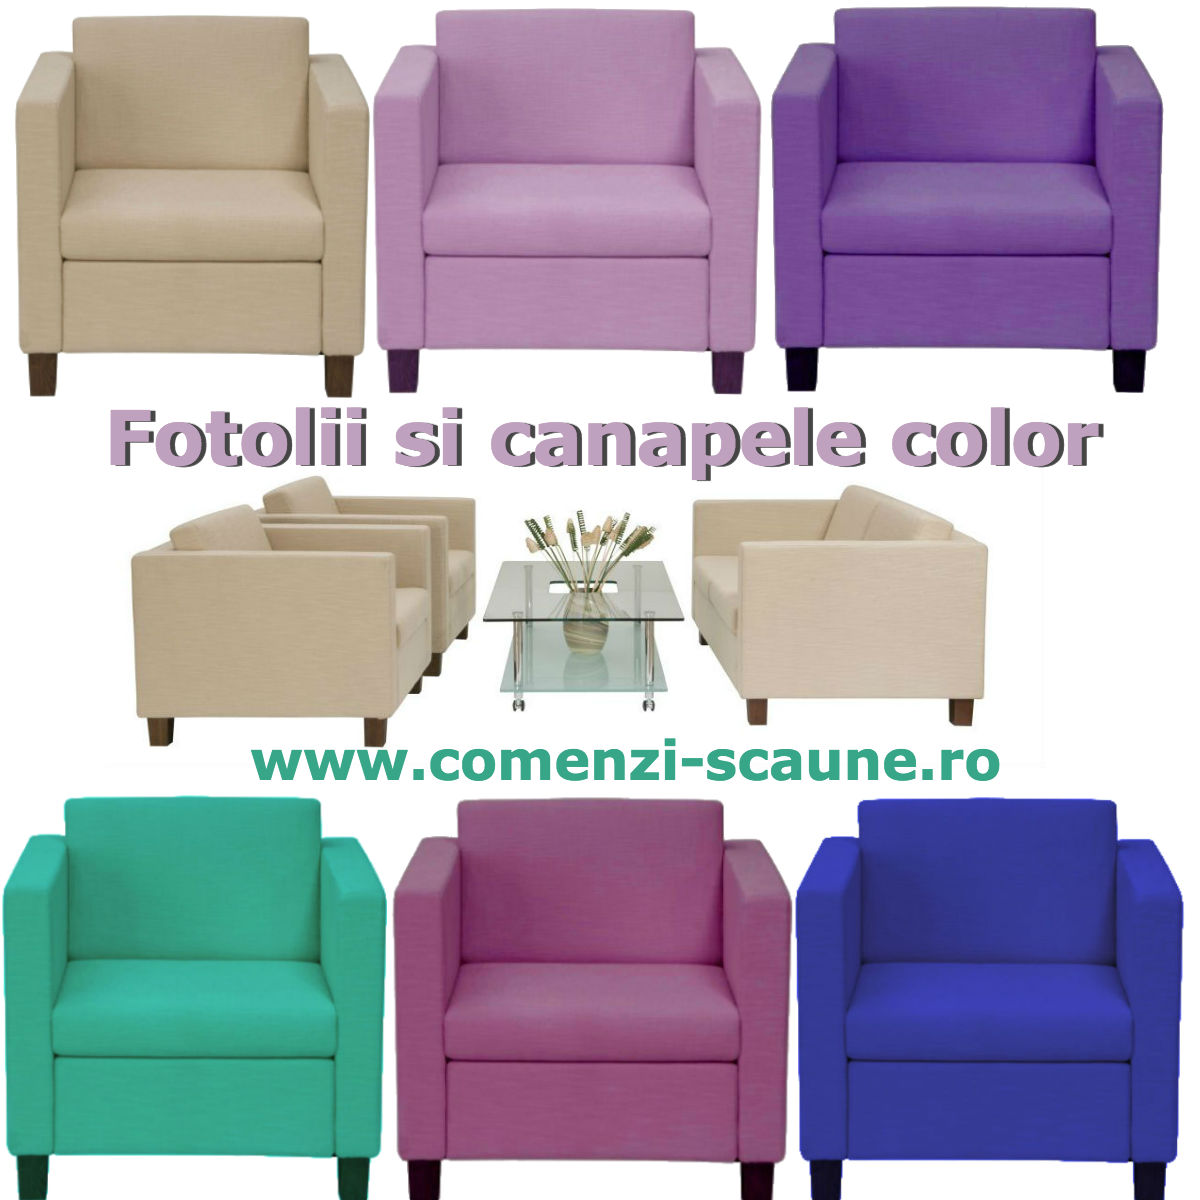 Fotolii-si-canapele-tapitate-color